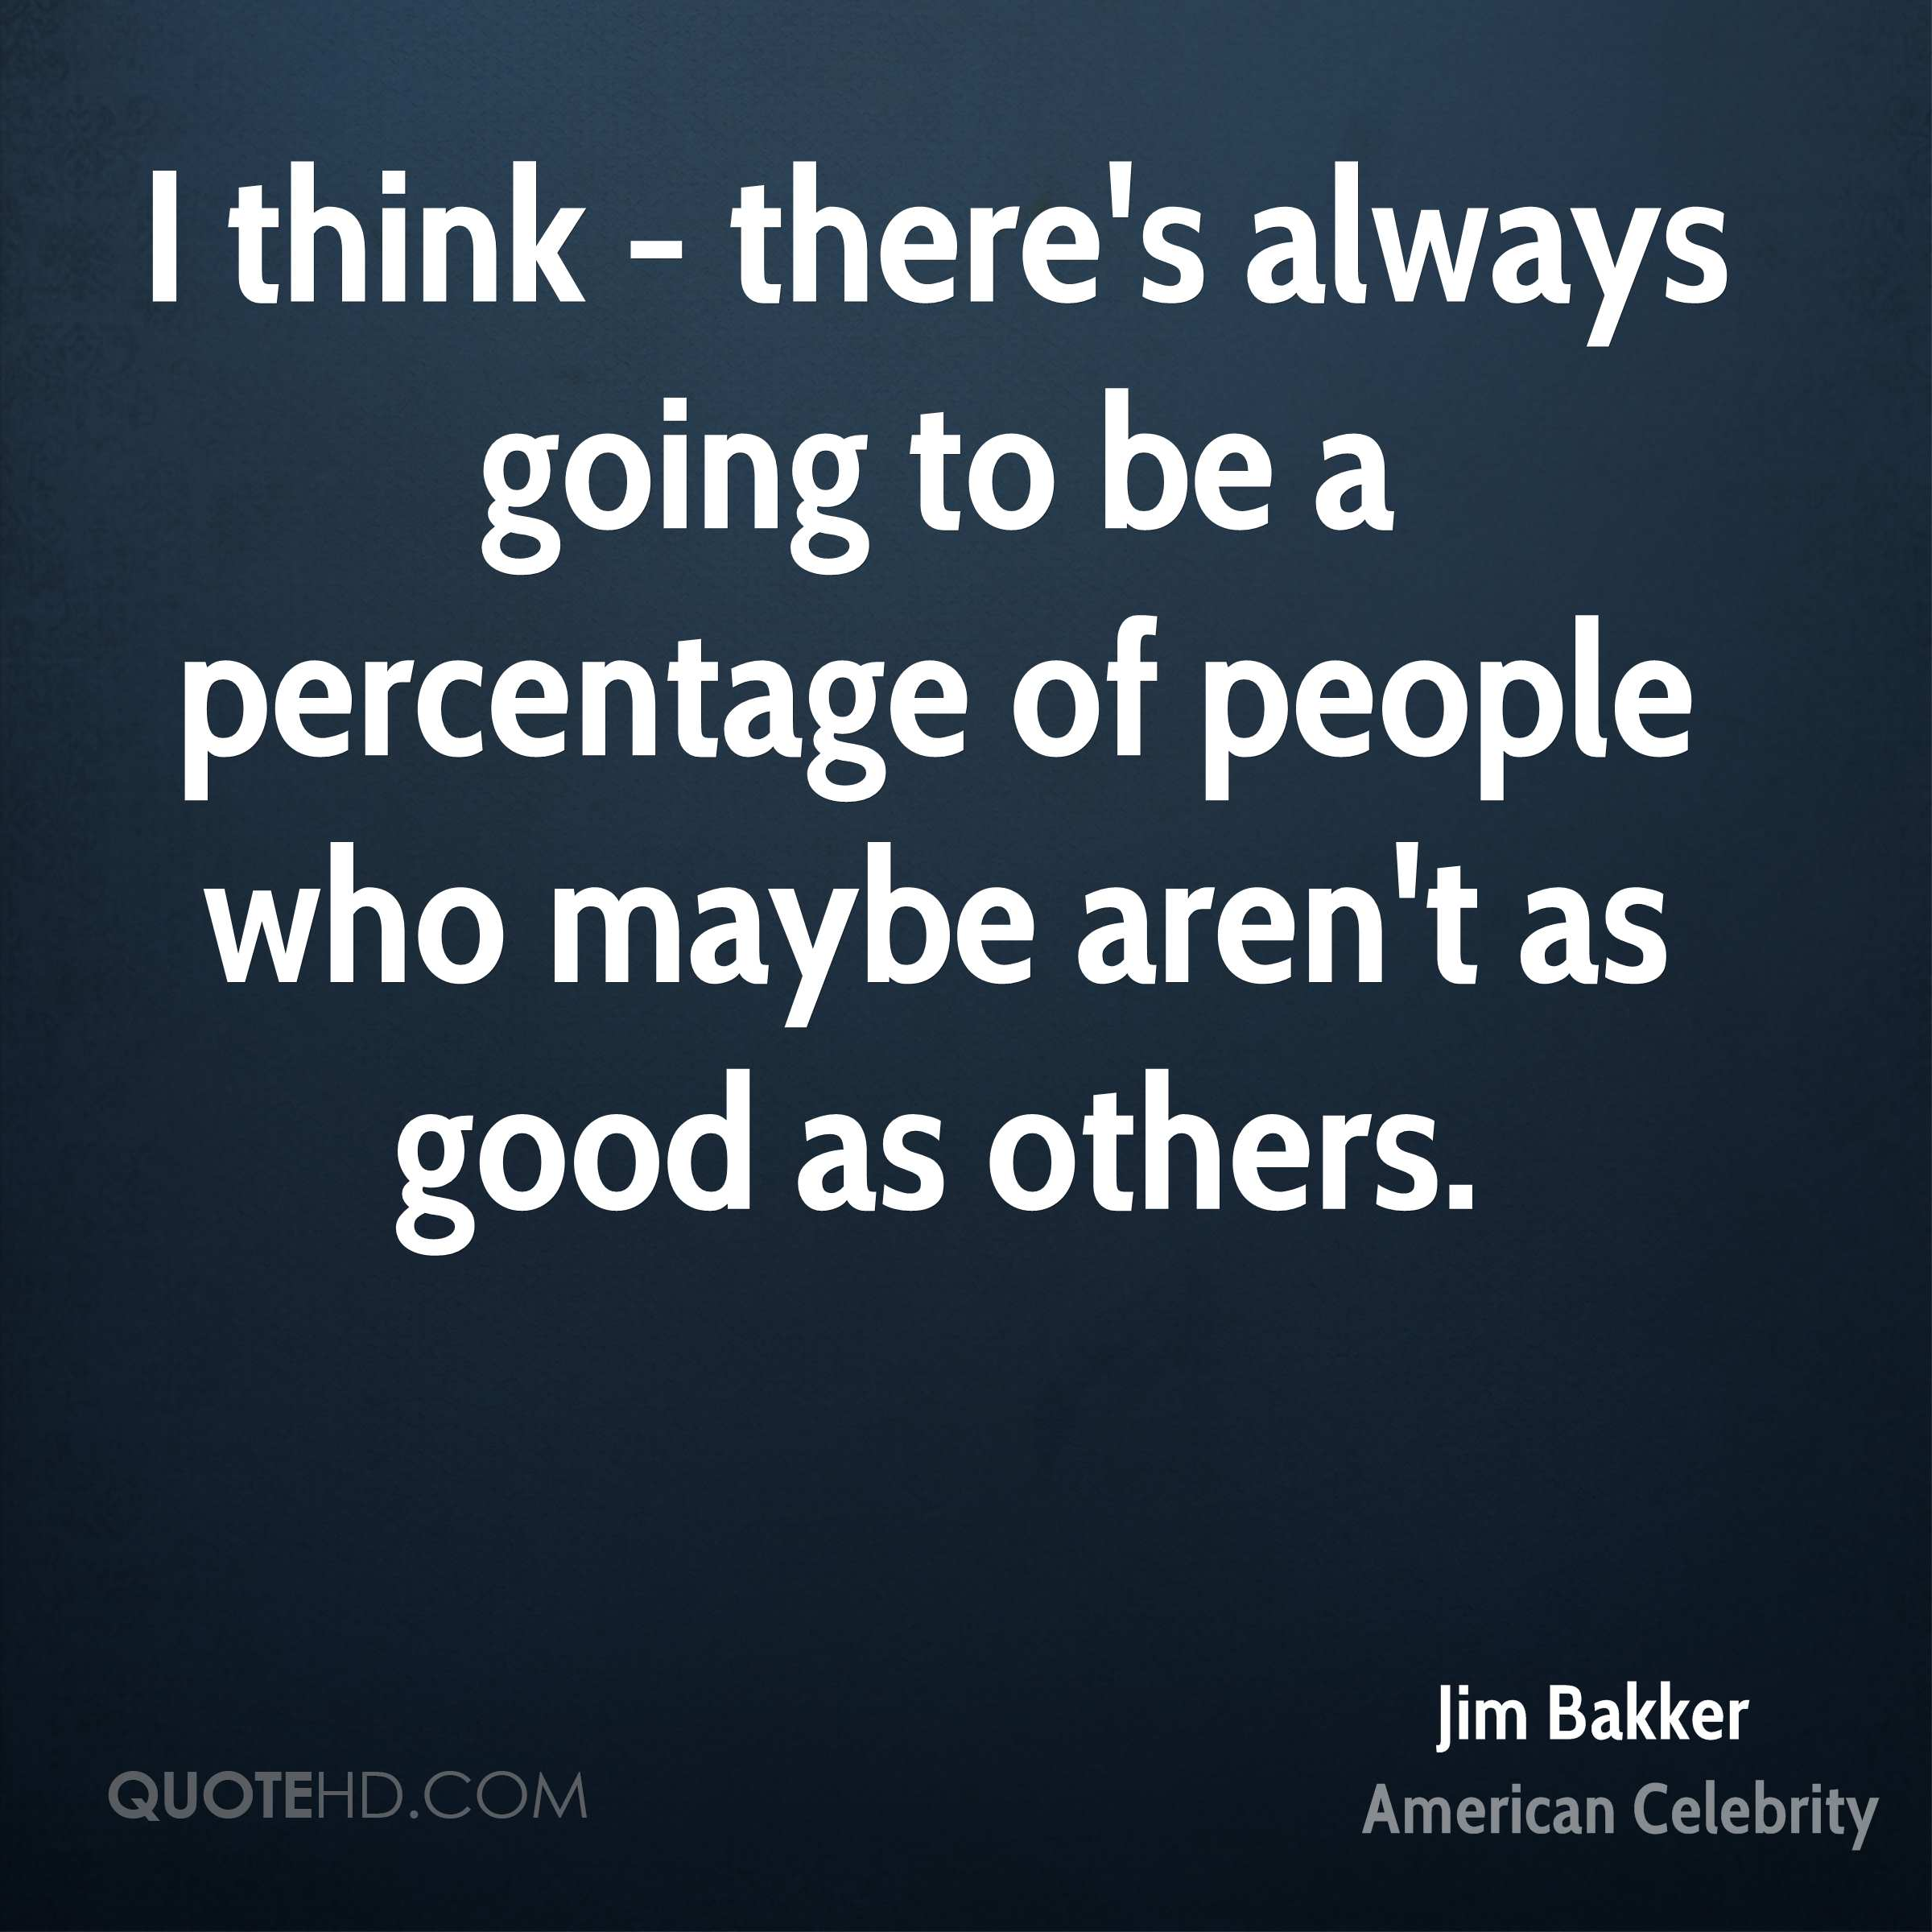 I think - there's always going to be a percentage of people who maybe aren't as good as others.